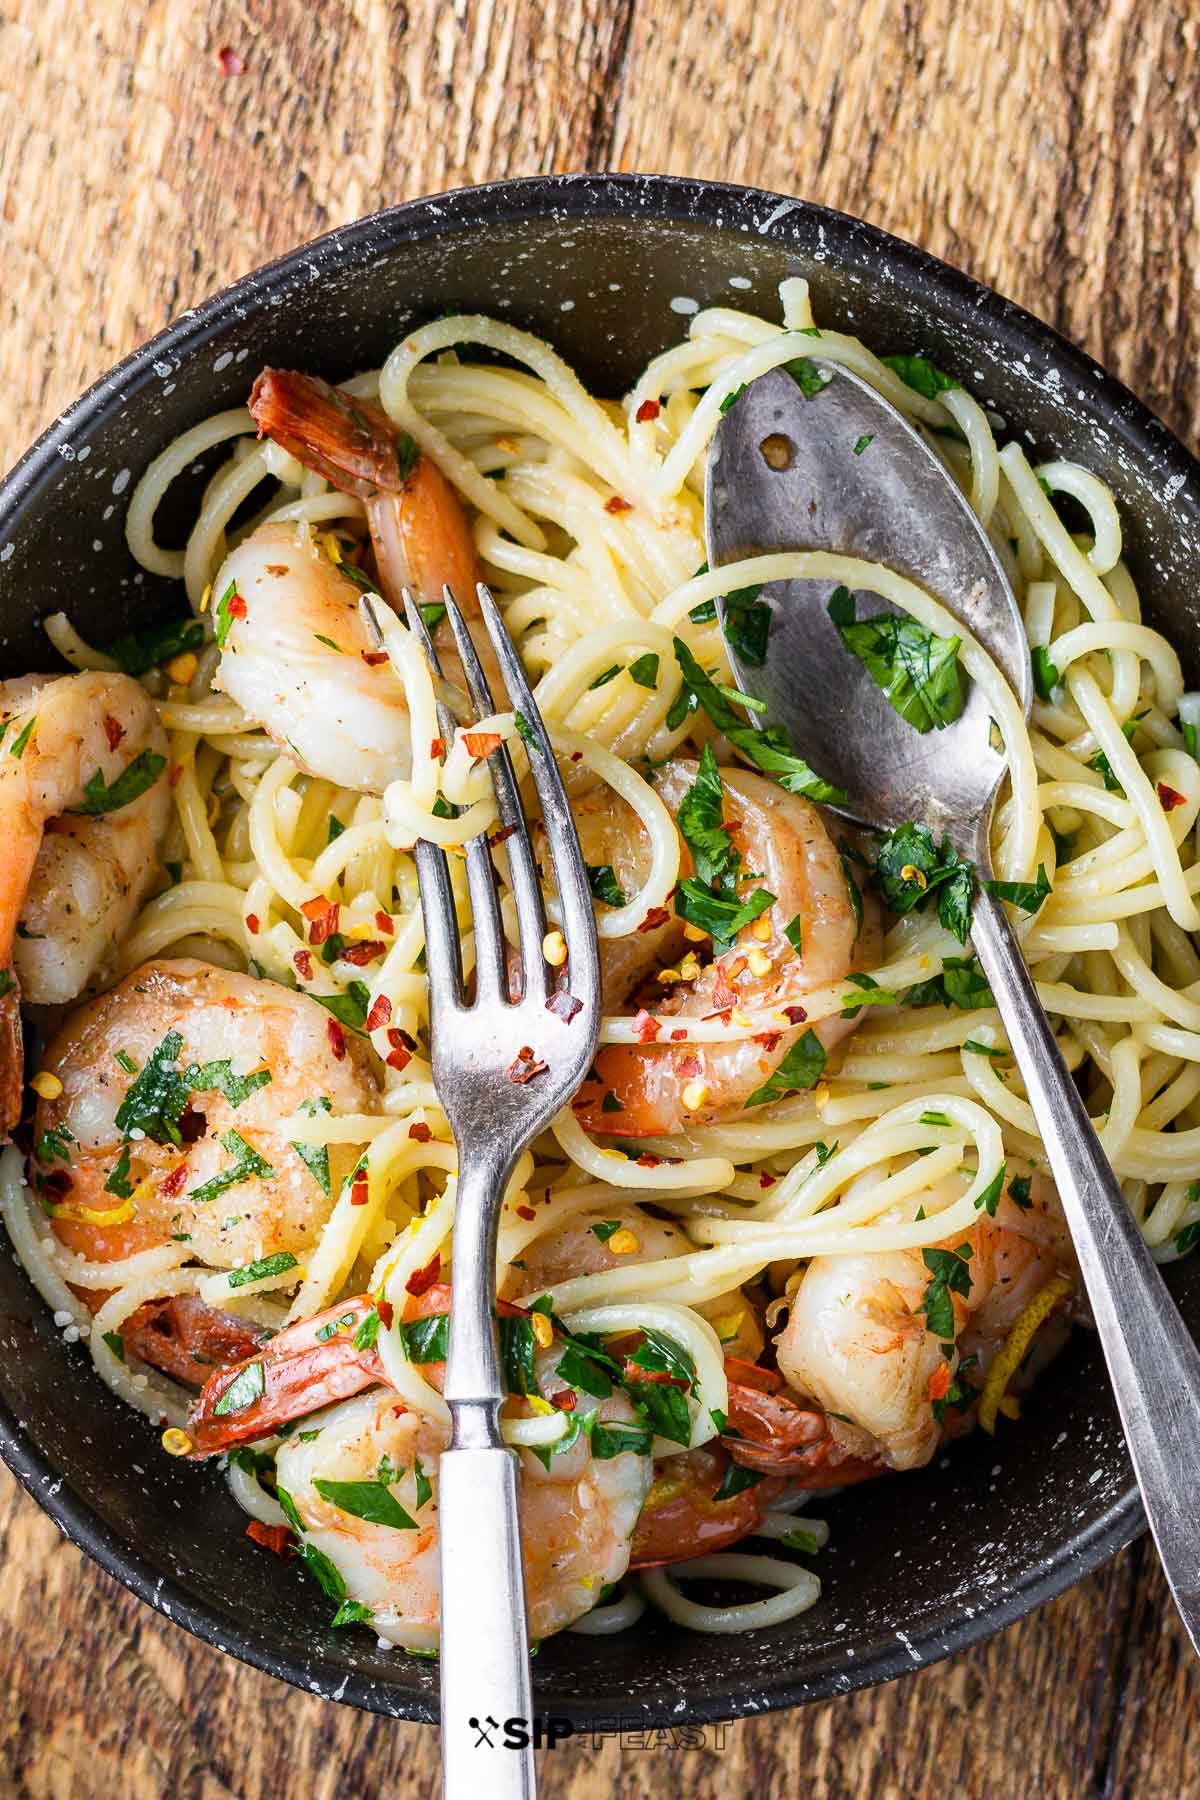 Lemon Garlic Shrimp Pasta - Quick and easy weeknight meal that will impress everyone.  This delicious pasta recipe can be made in 30 minutes! #sipandfeast #shrimp #shrimppasta #spaghetti #seafood #easydinnerrecipe #pastarecipe #italianrecipe #noodles